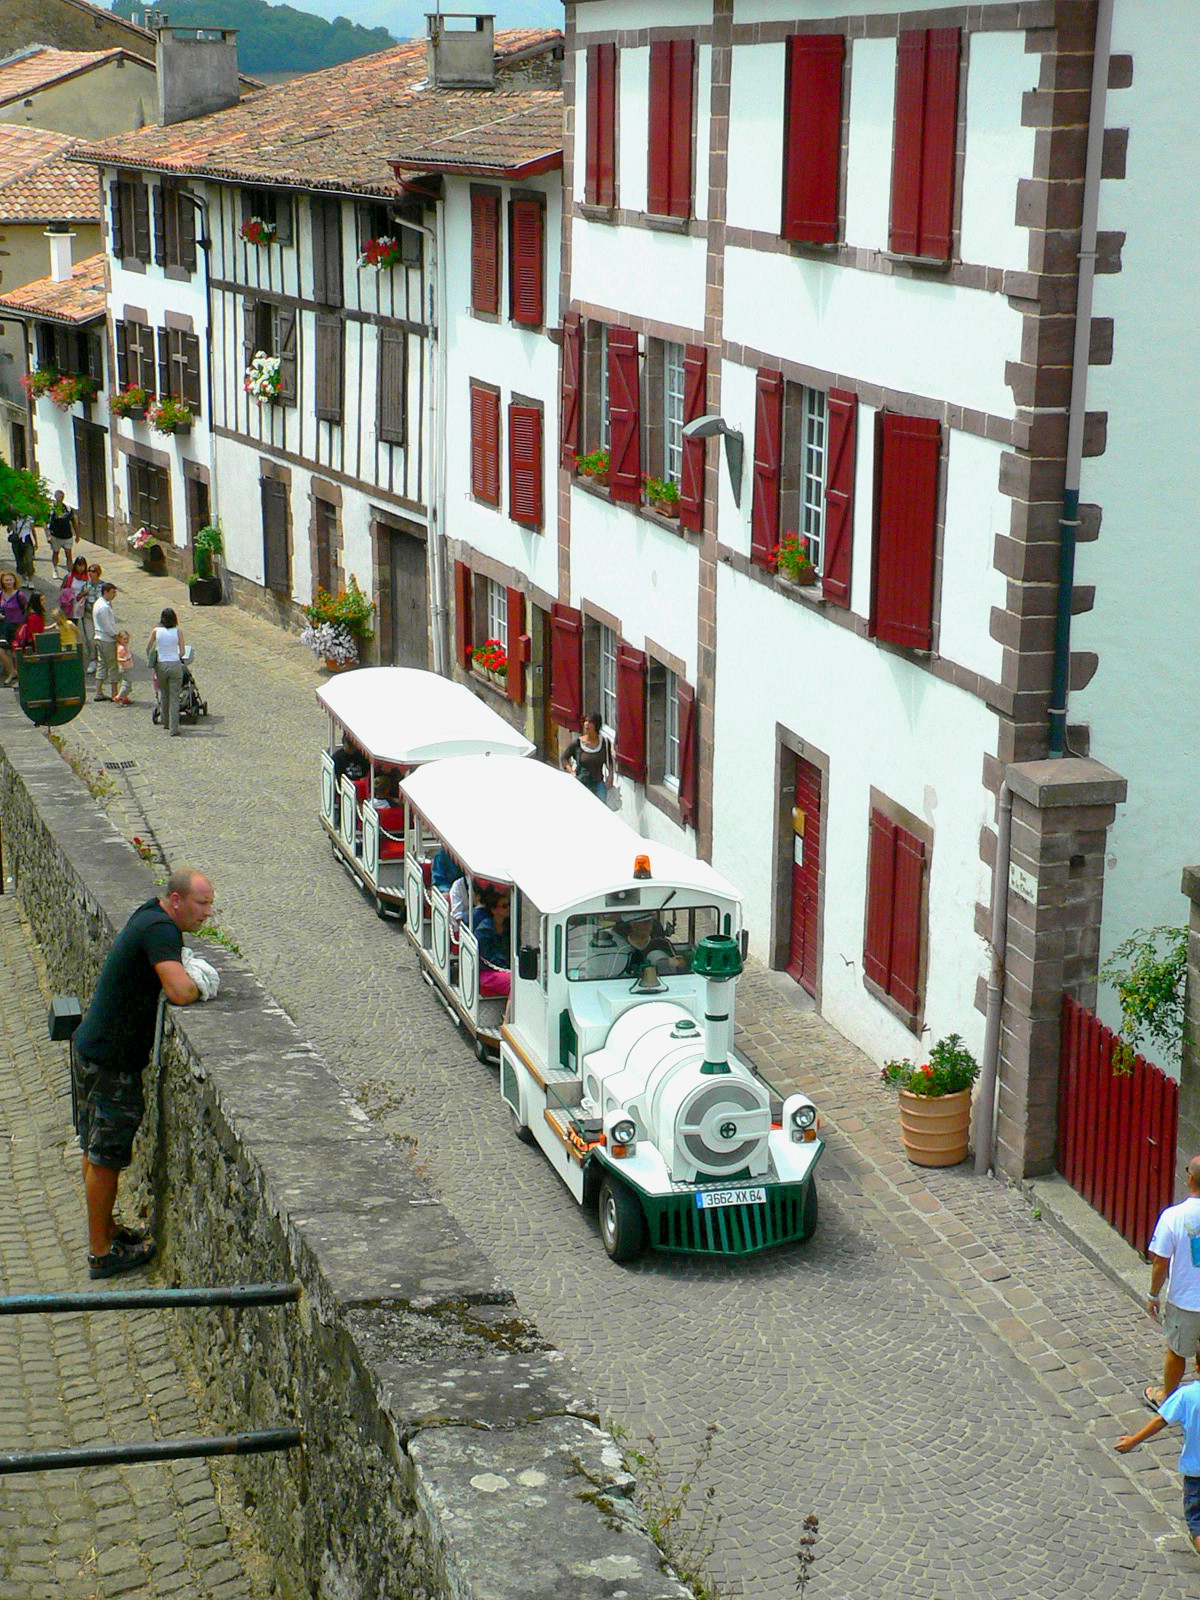 Saint jean pied de port france city tour train - Train from paris to st jean pied de port ...